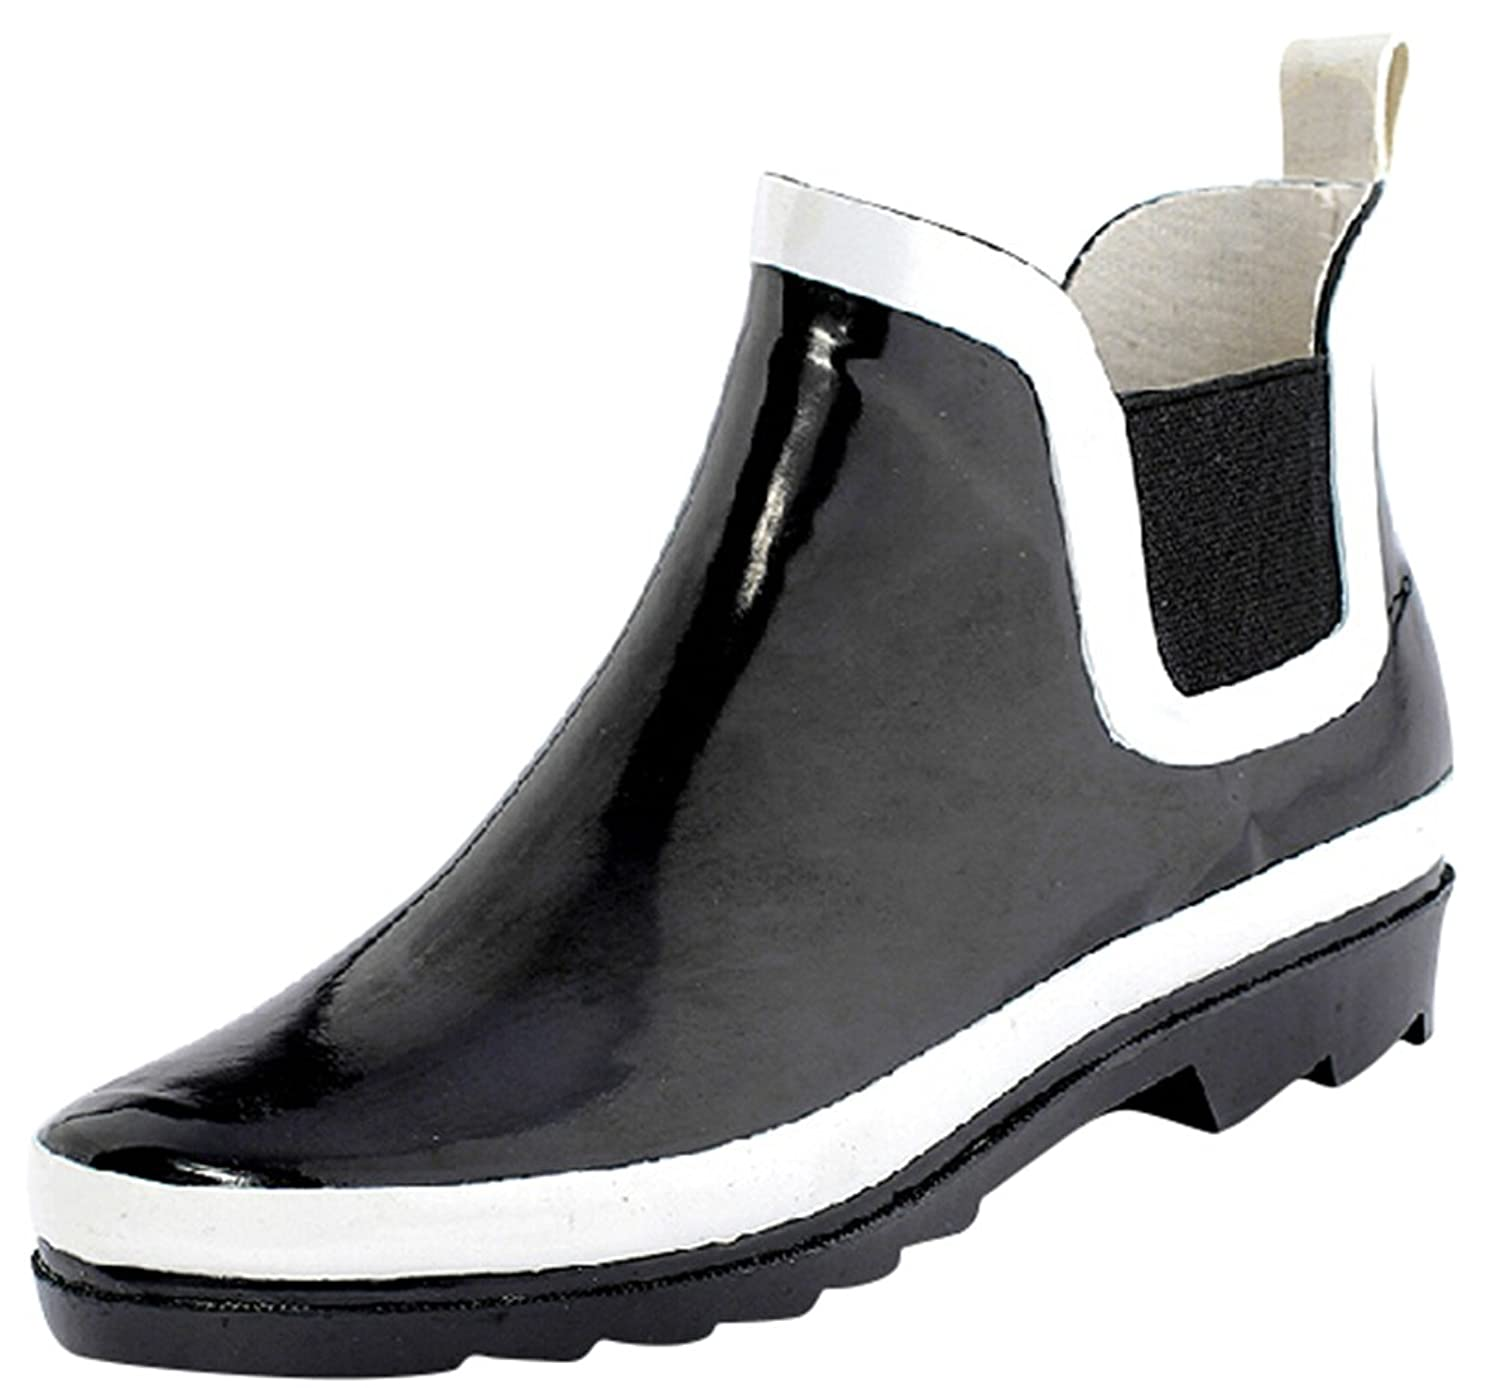 Ace Men's Boys Fashion Waterproof Anti-skid High-top Pull-on Work Boots Rain Boot